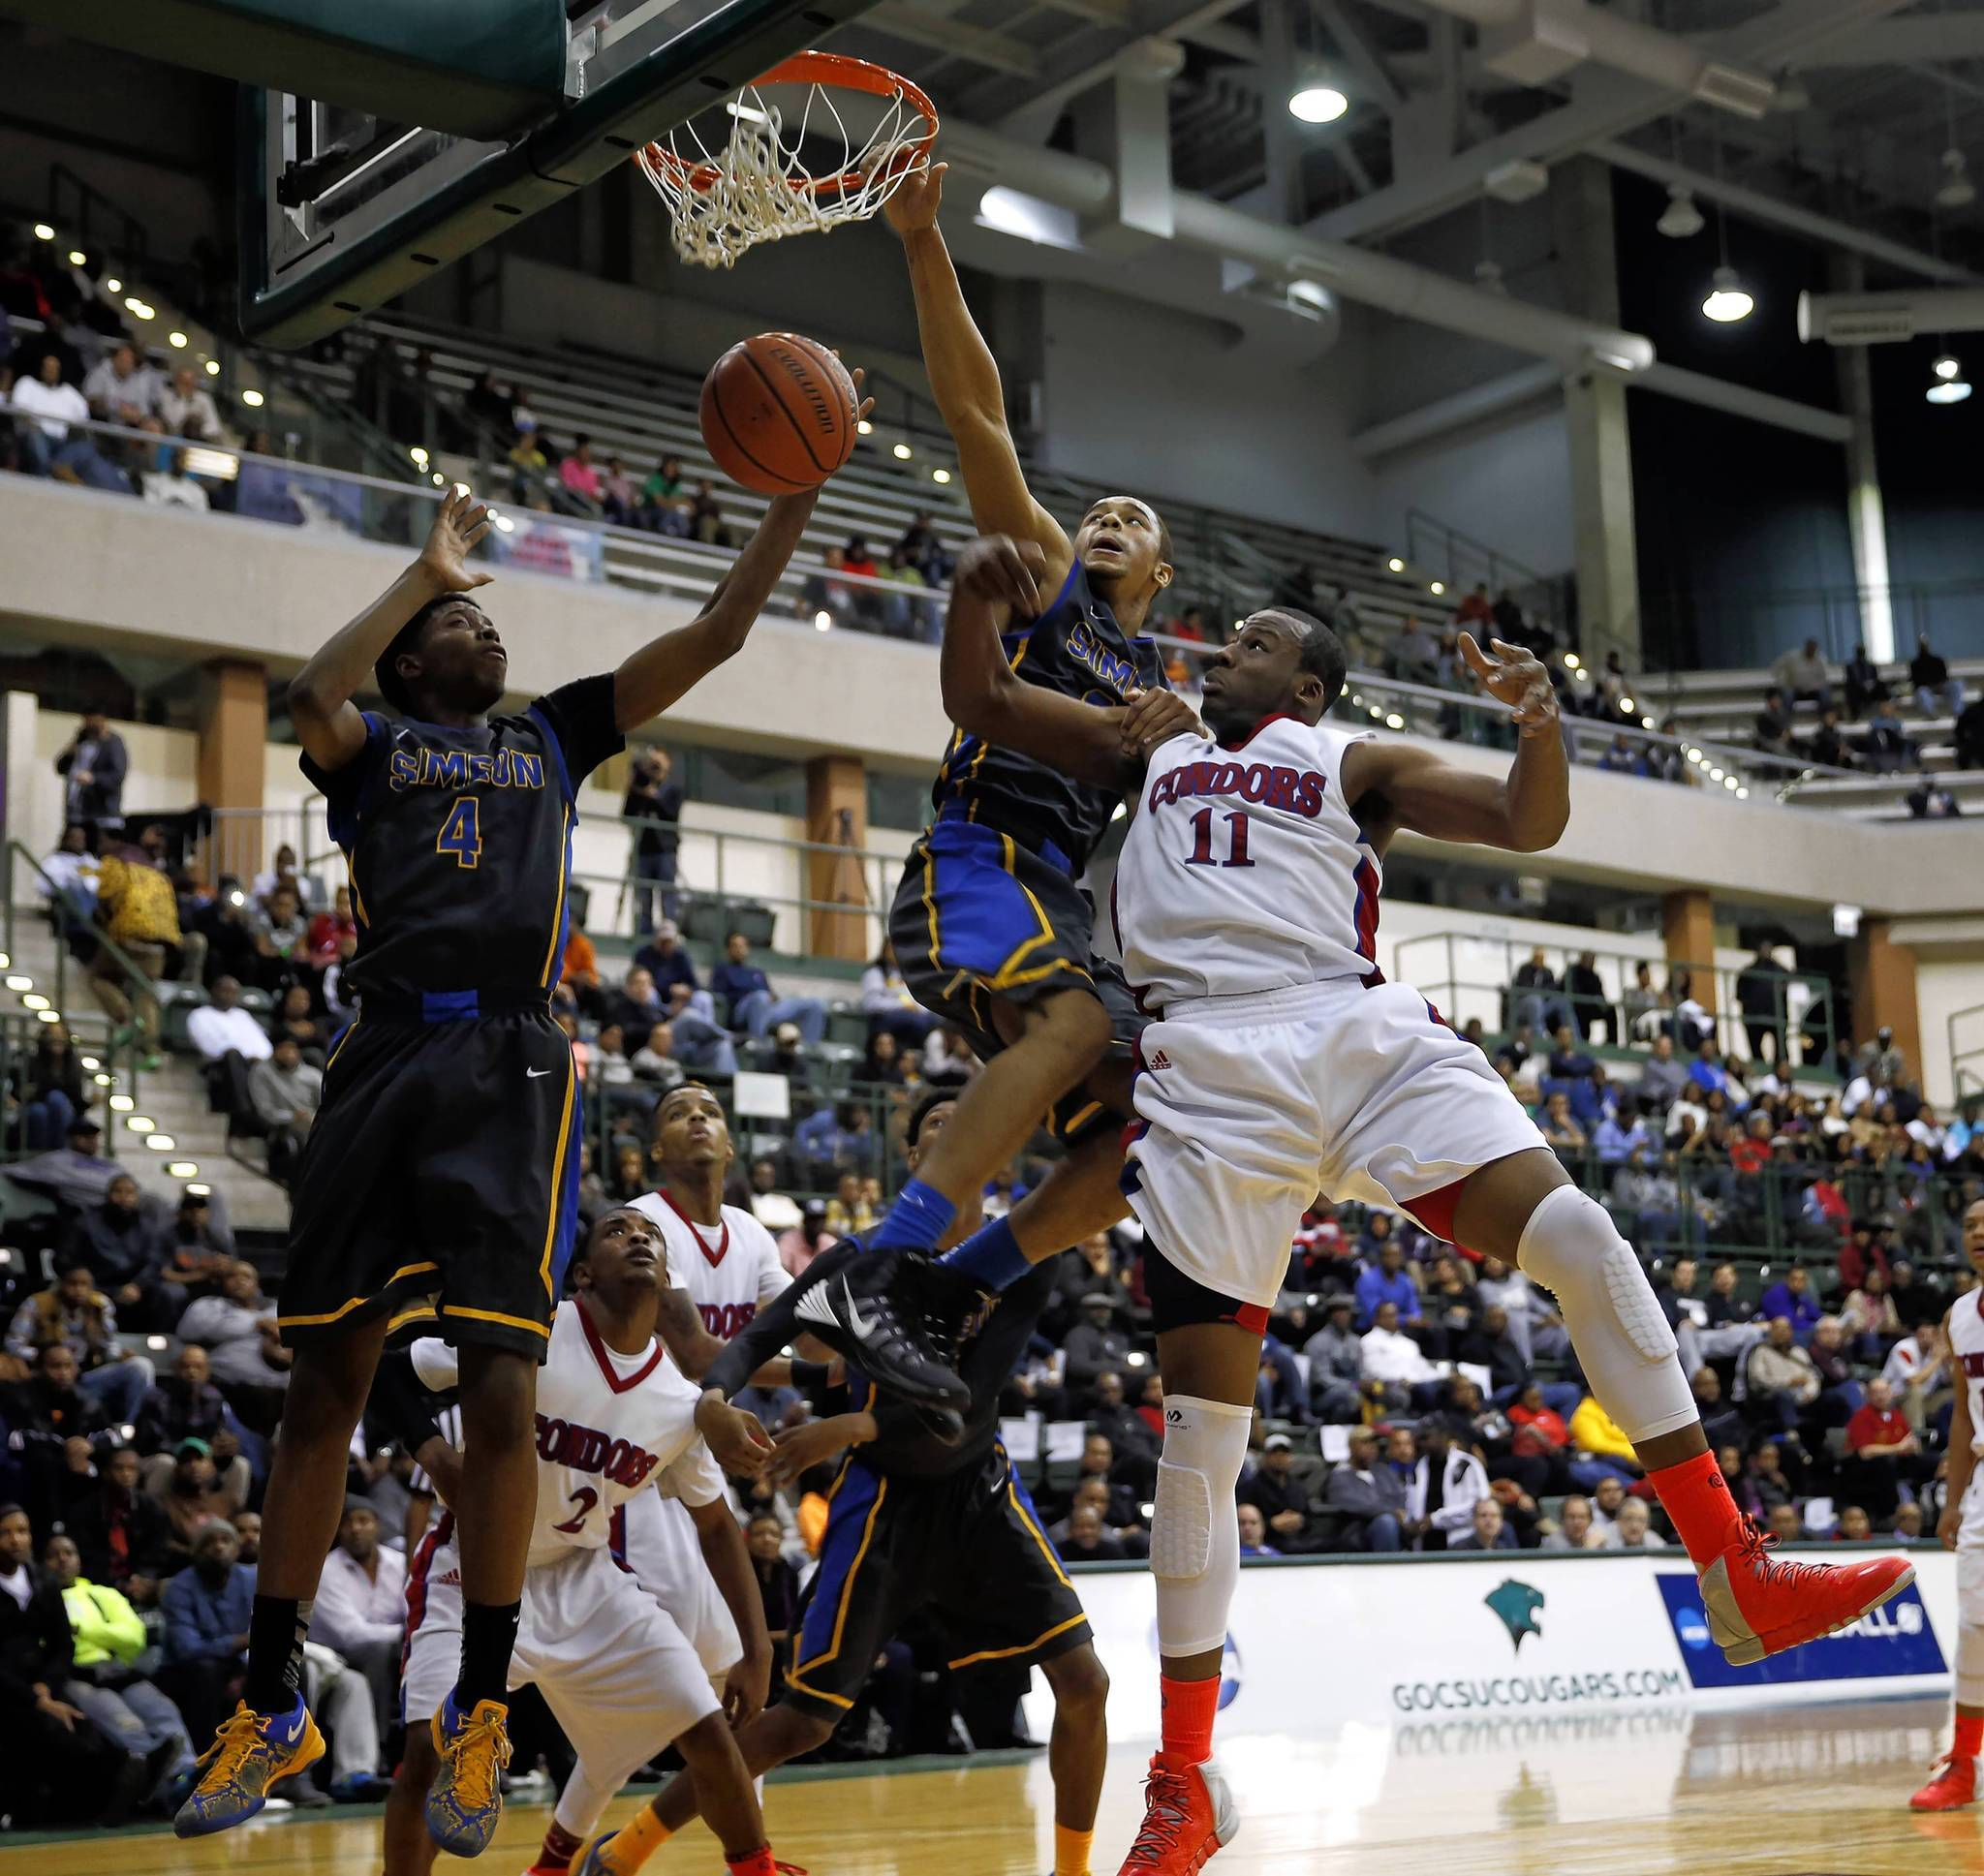 Simeon's Edward Morrow misses a dunk attempt against Curie's Cliff Alexander.